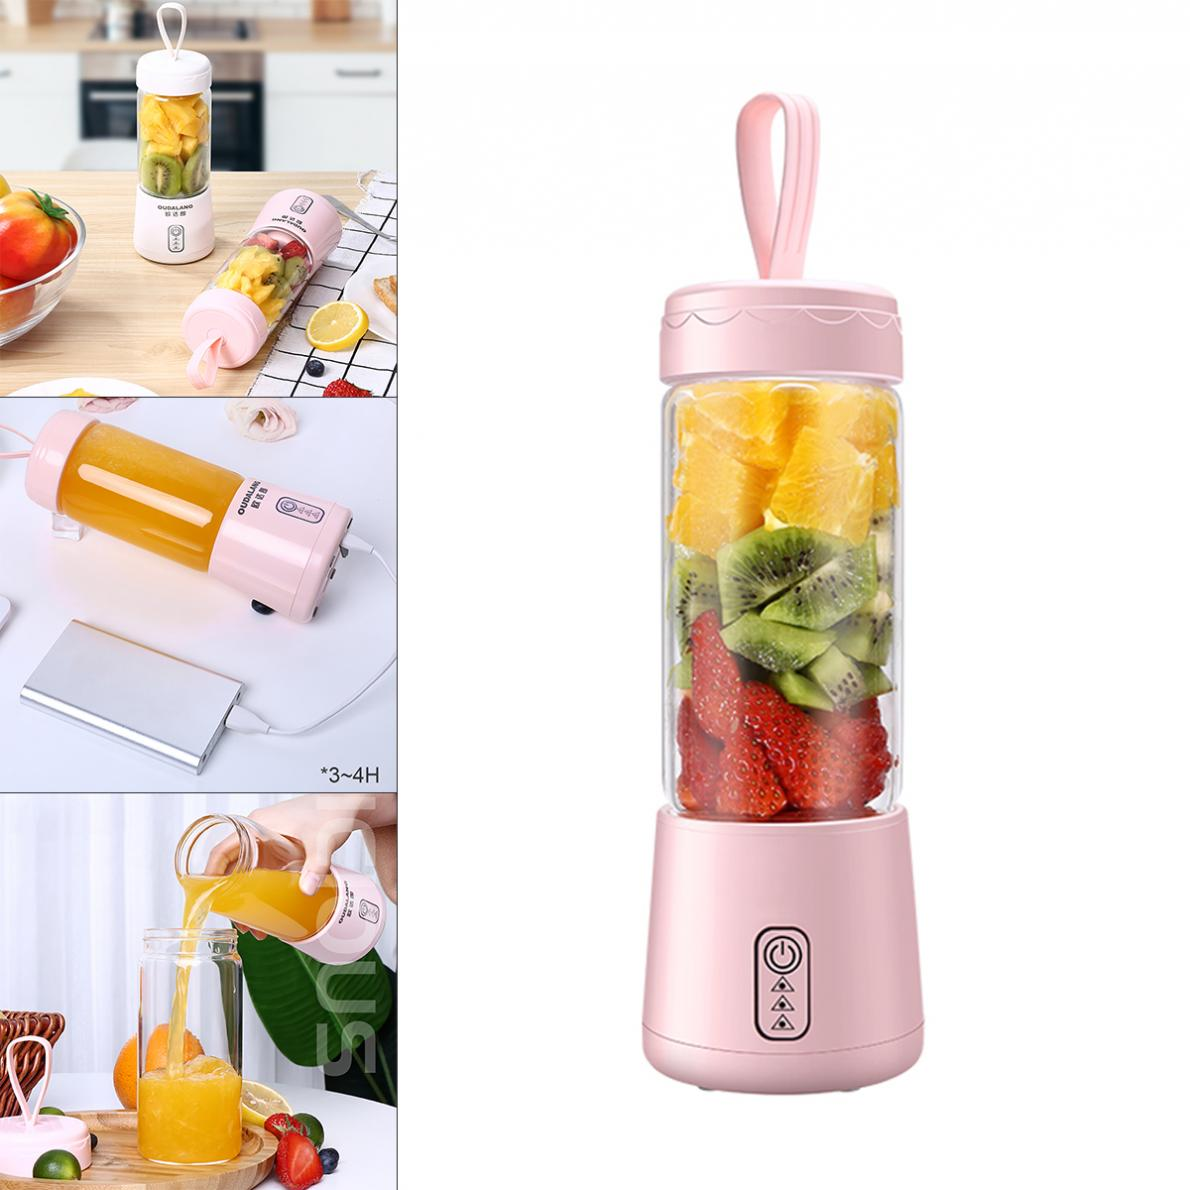 Juicer Cup 6 Blades Portable Blender  Fruit Shakes Smoothie Mixer with 2600mAh Rechargeable Battery for Home Office Travel